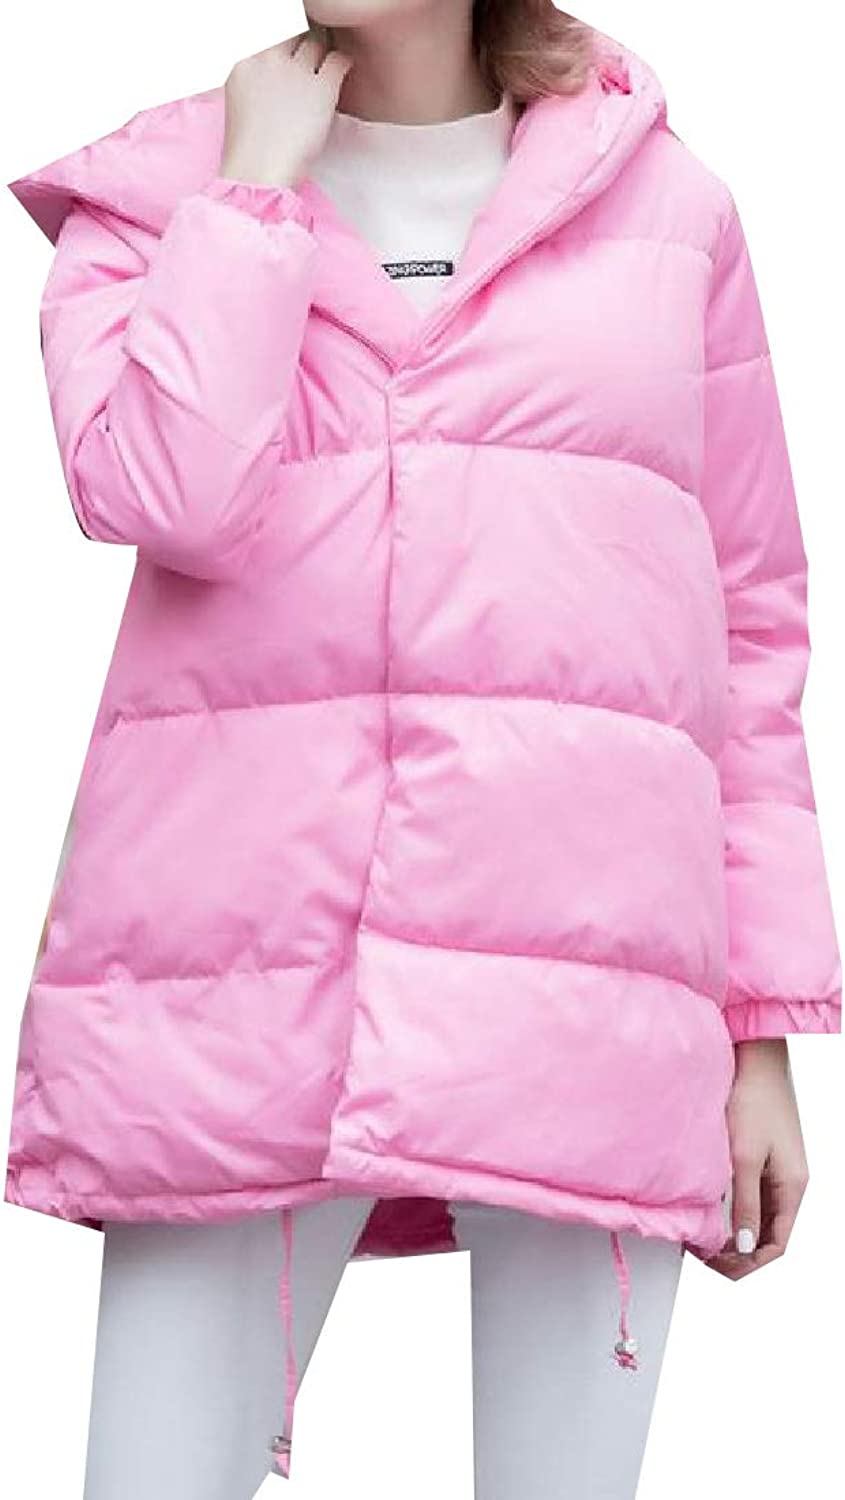 TaoNice Women Hooded Casual Baggy Style Thickened PlusSize Jacket Coat